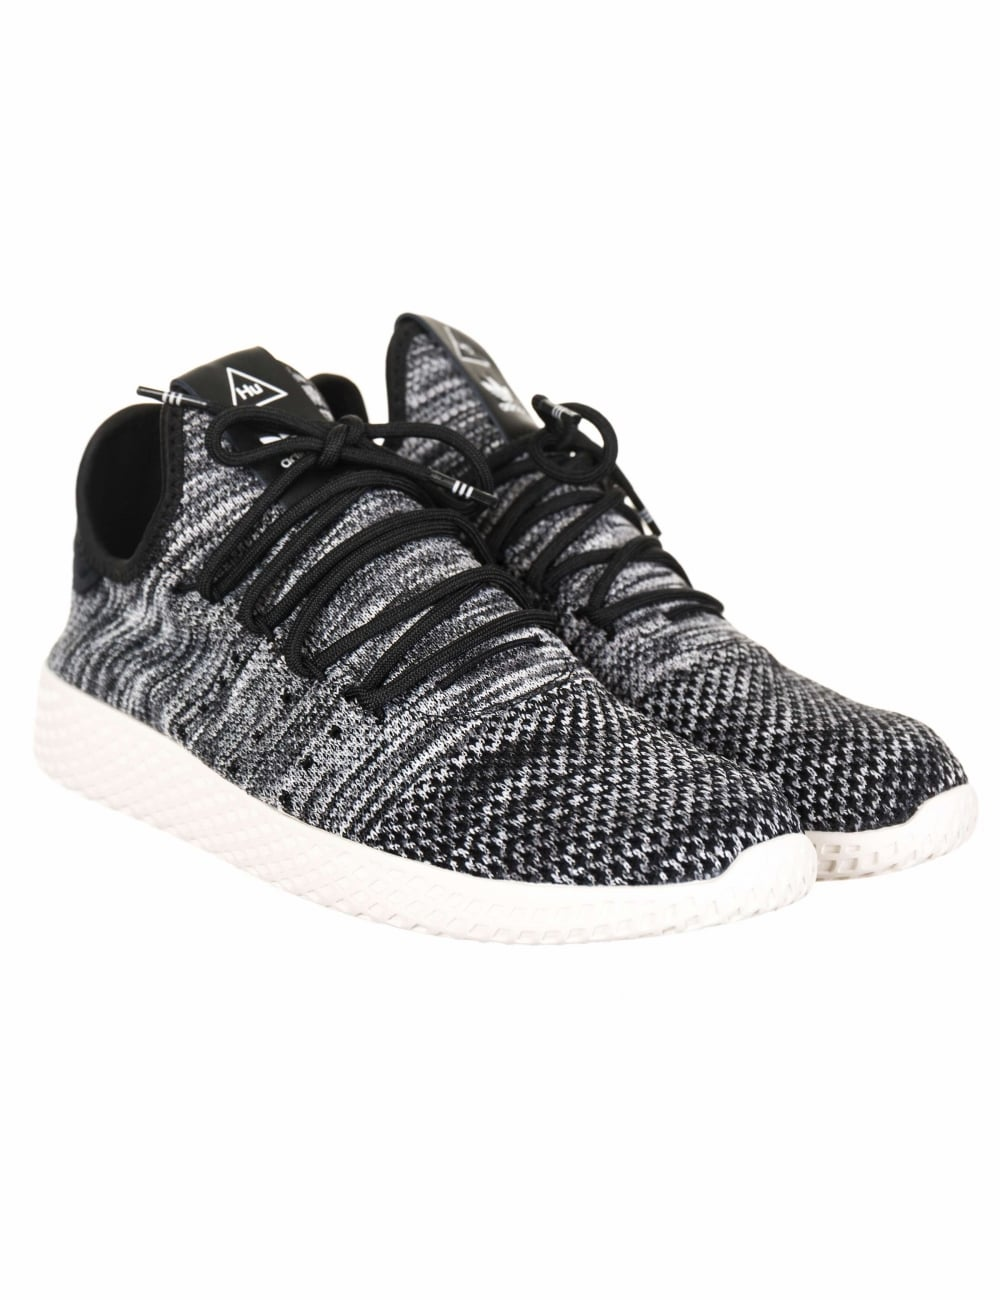 2f0c526f3f1cc Adidas Originals x Pharrell Williams Tennis HU PK Trainers - Chalk ...